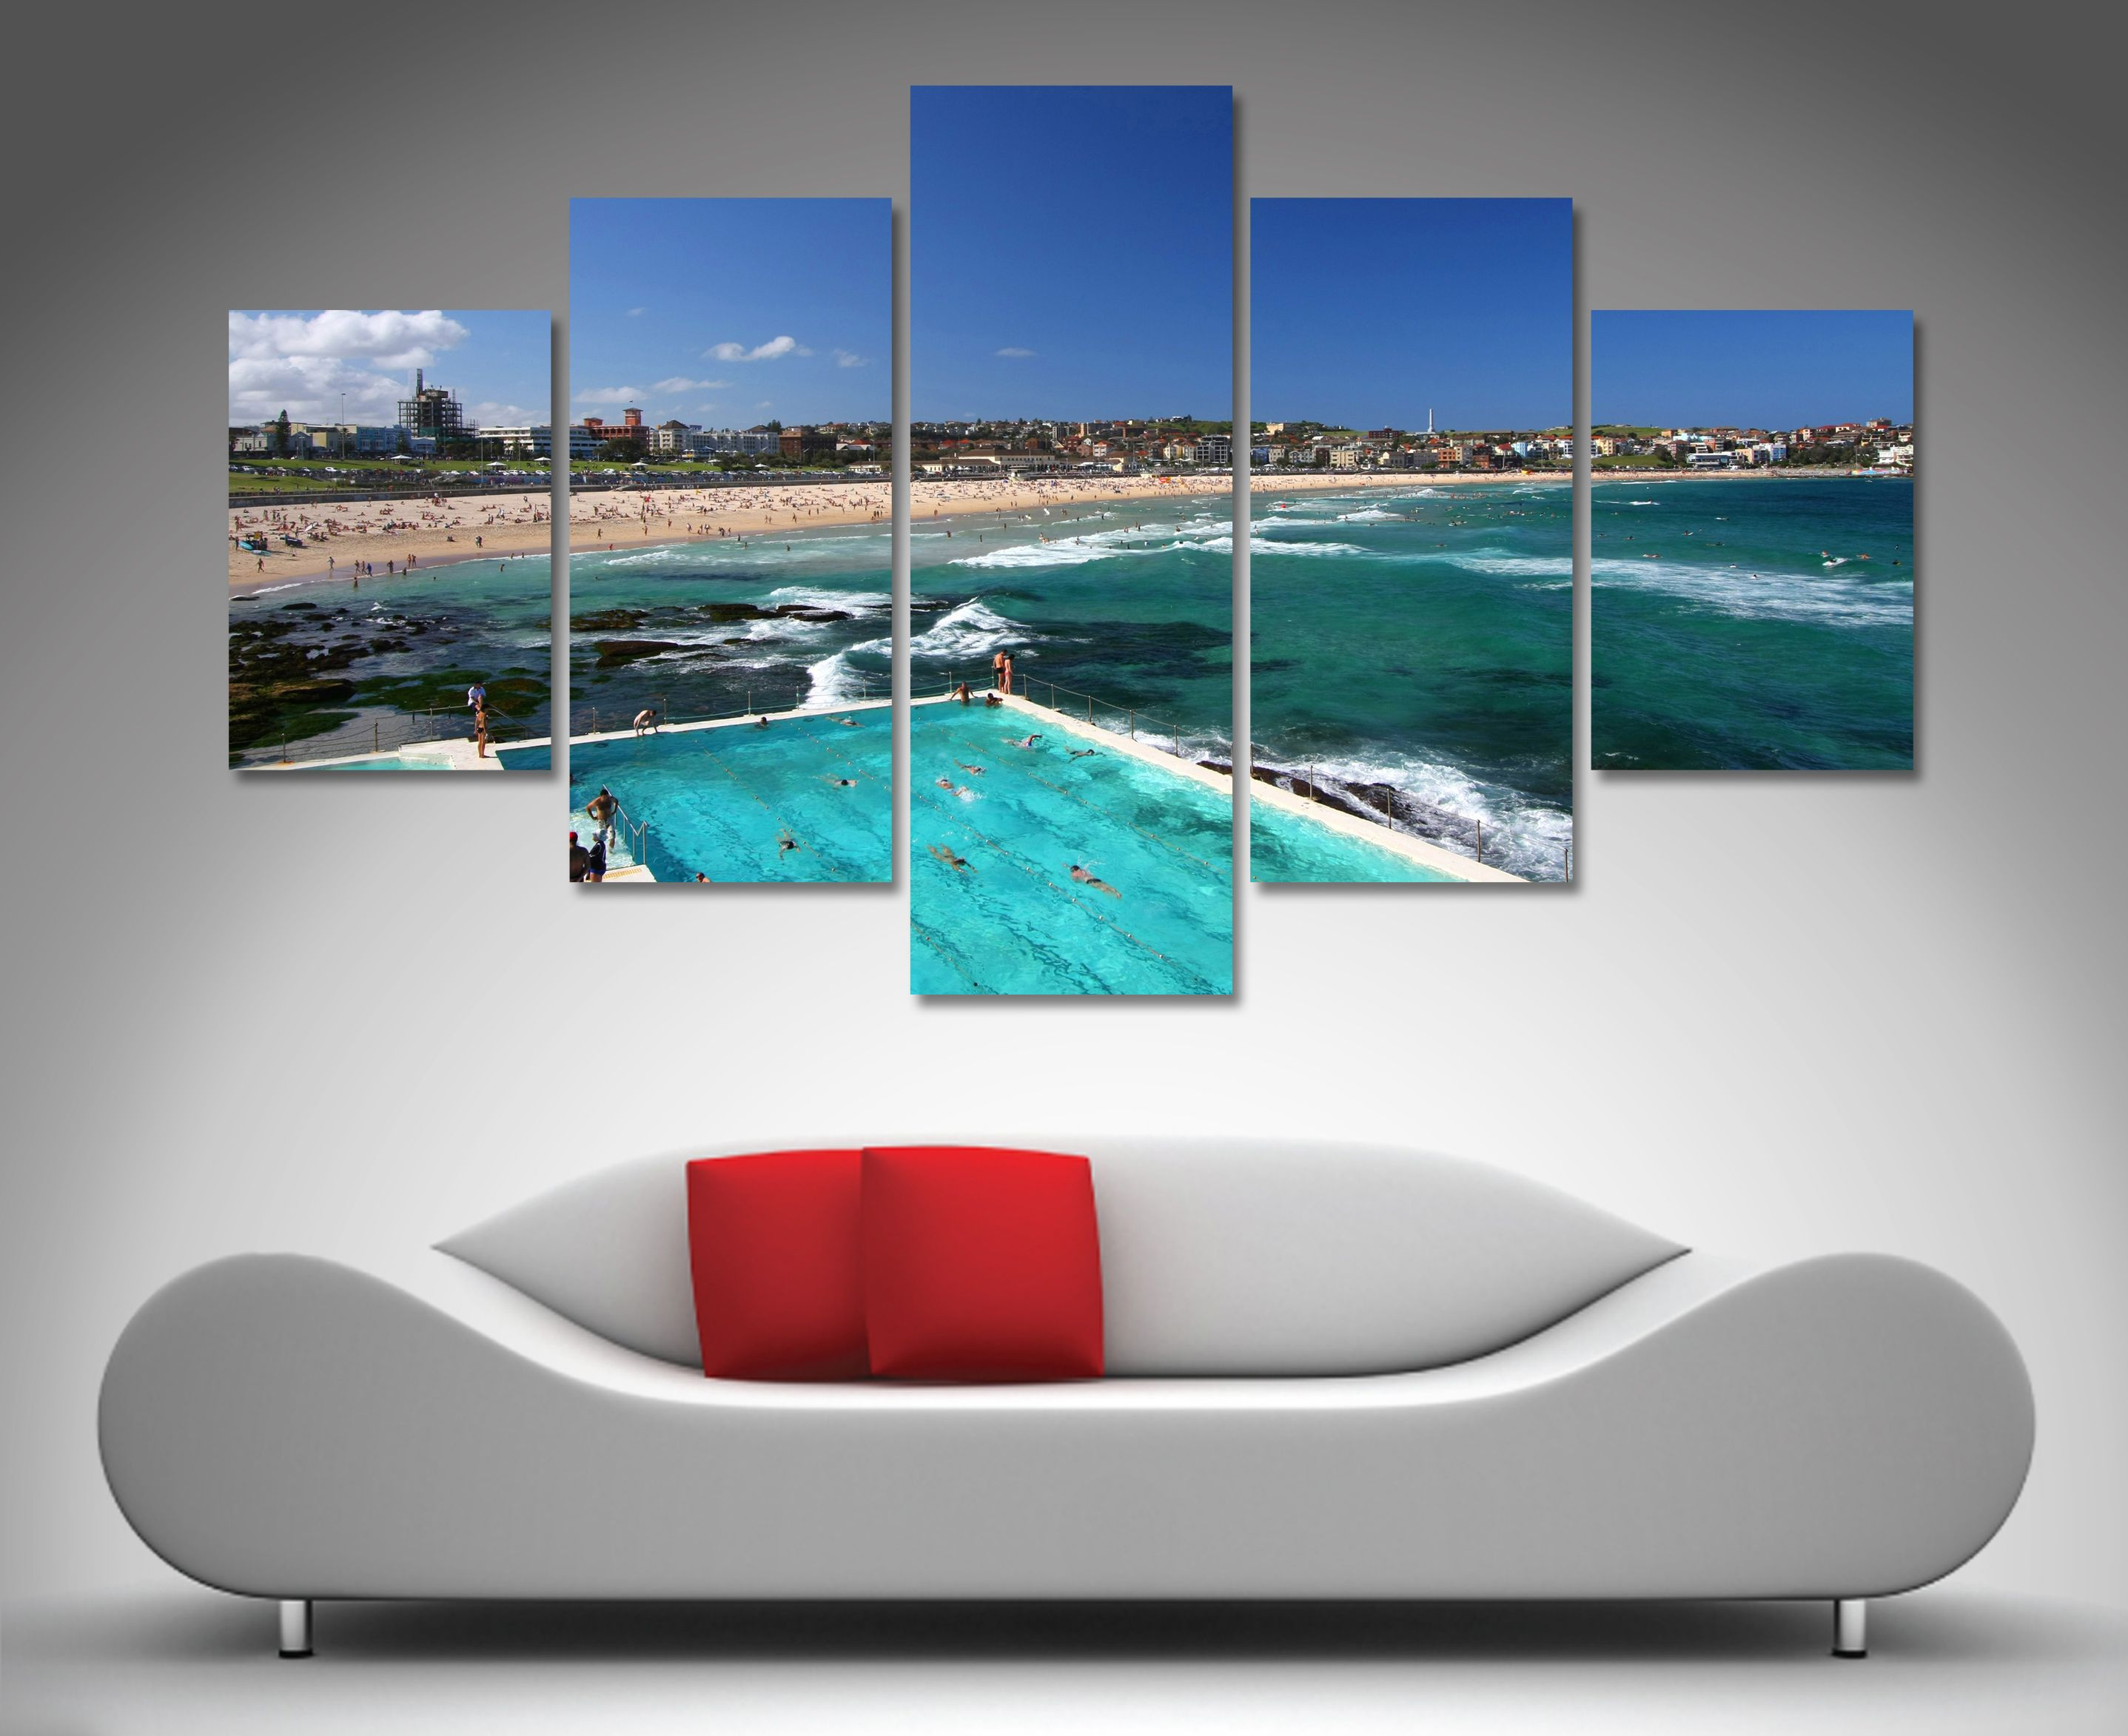 Bondi Icebergs 5 Panel Canvas Prints  Http://www.bluehorizonprints.com.au/canvas Art/5 Split Panel Diamond/